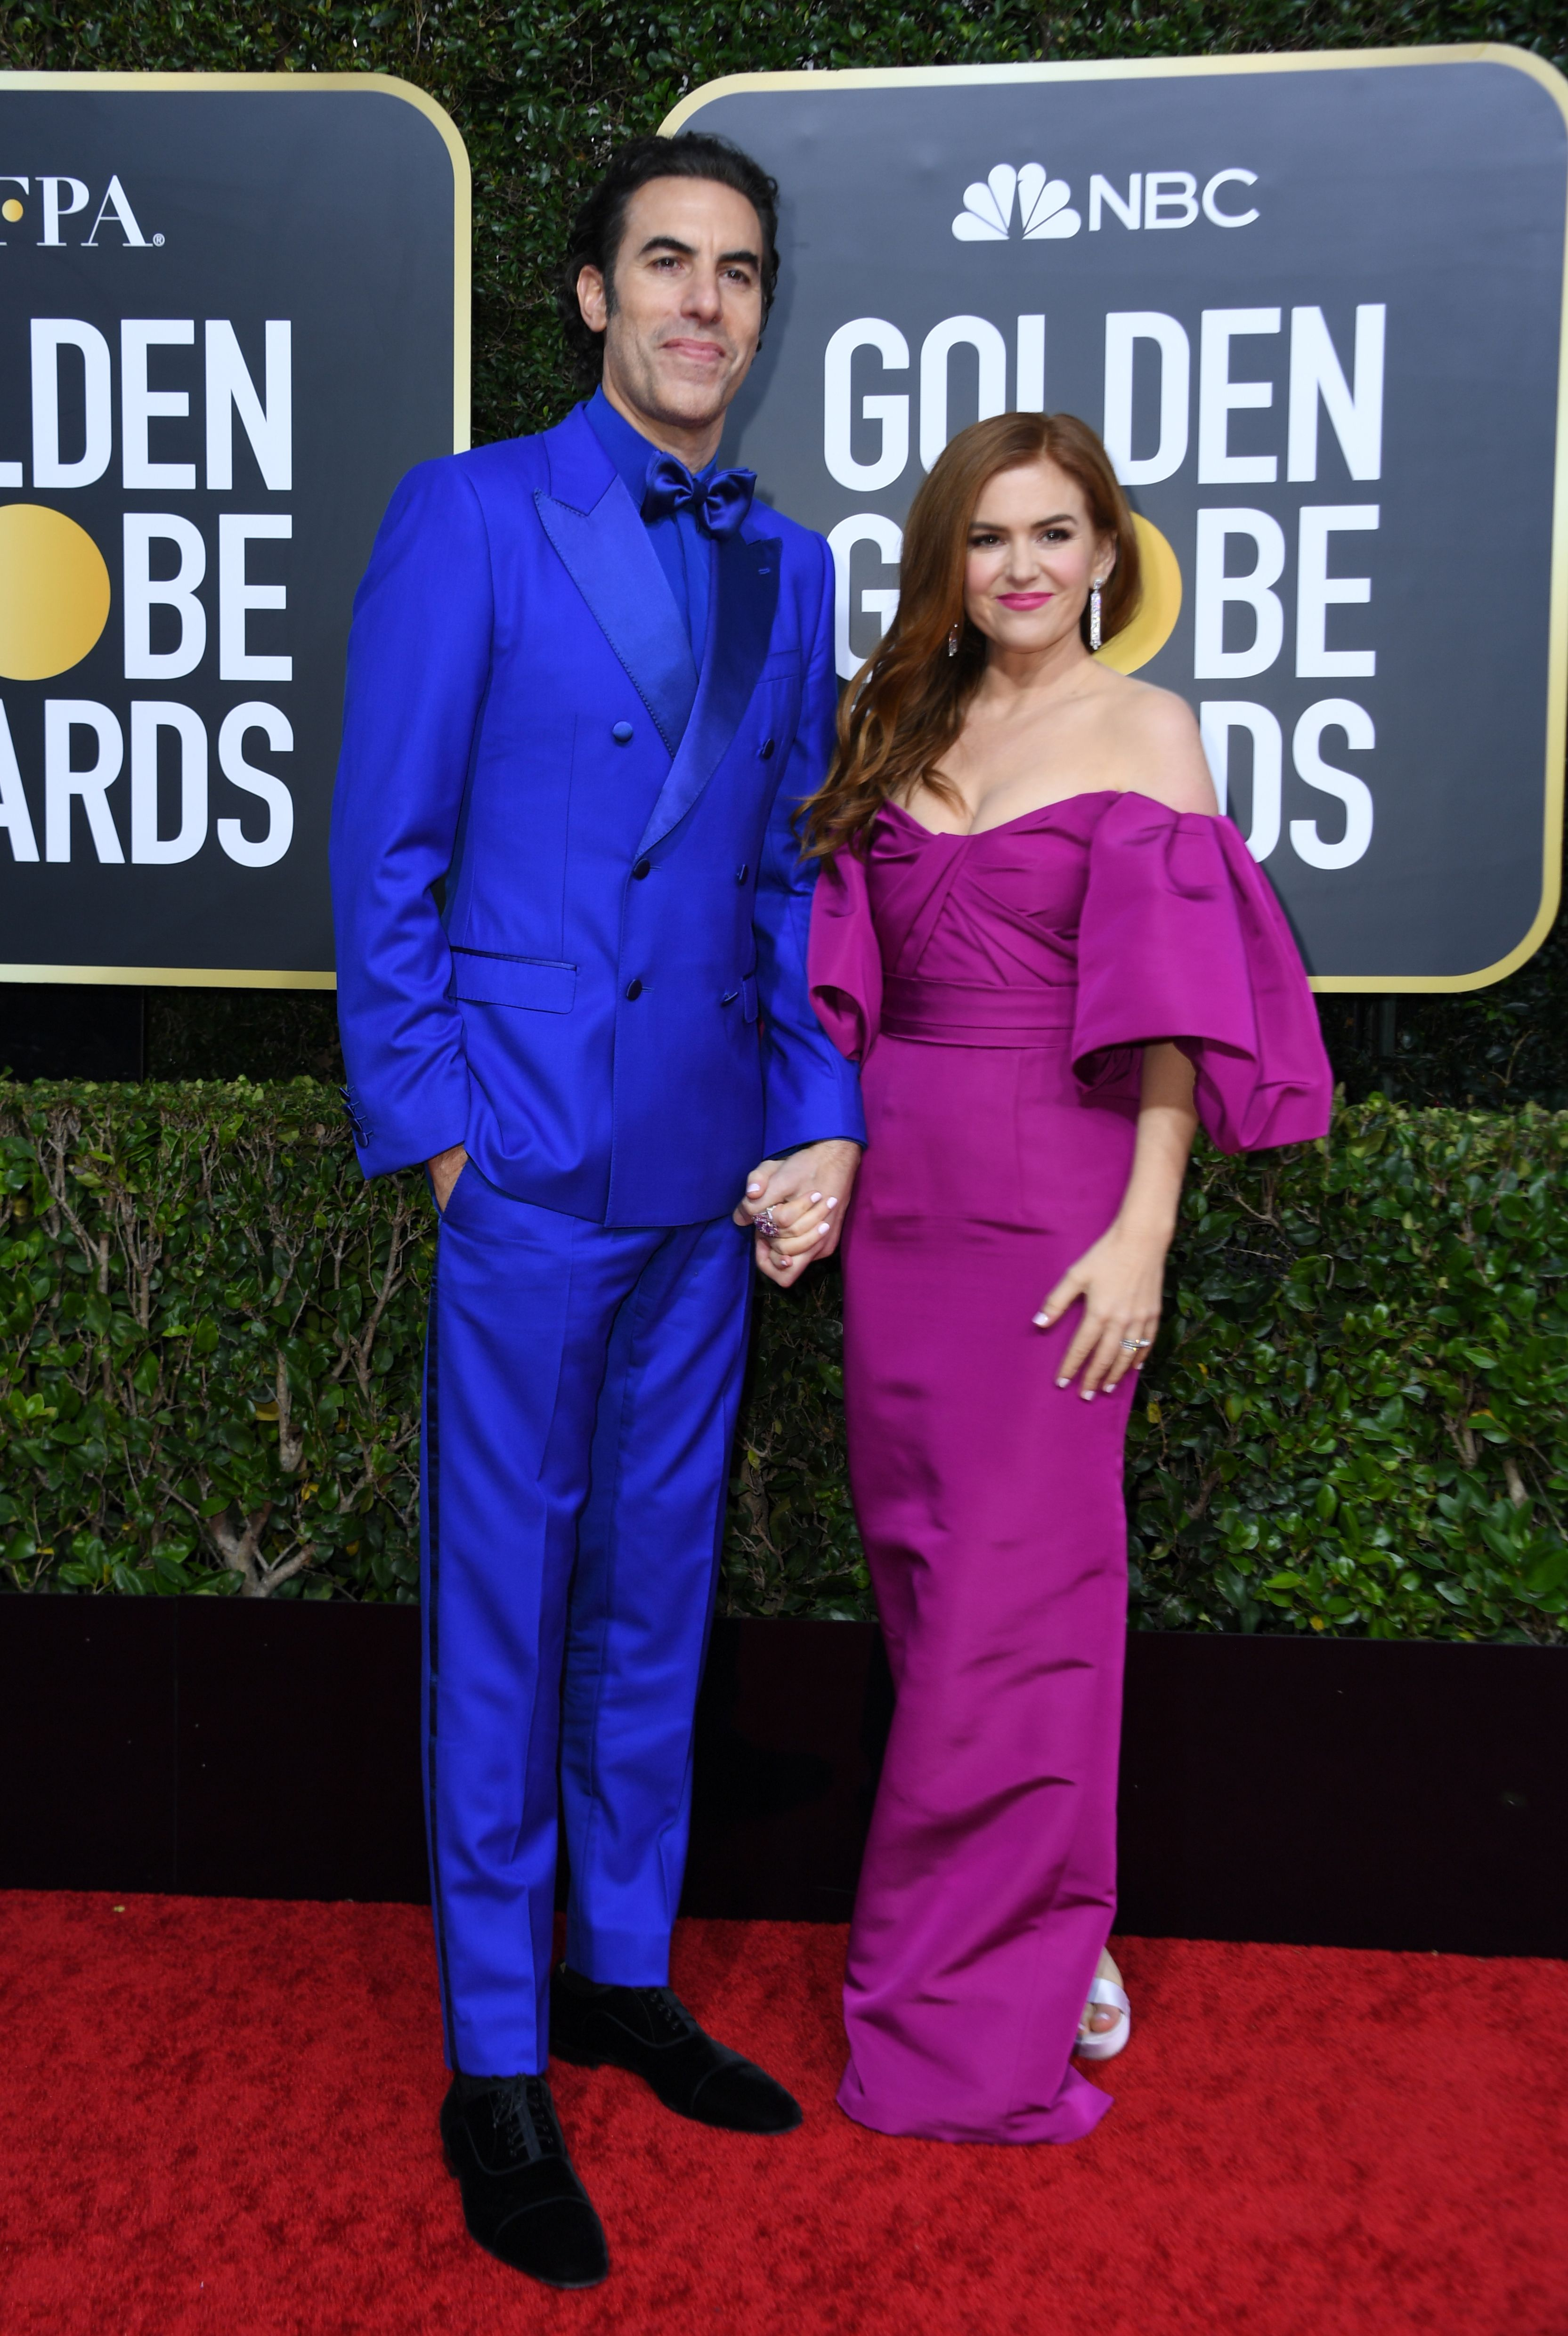 Actor Sacha Baron Cohen and his wife actress Isla Fisher arrive for the 77th annual Golden Globe Awards on January 5, 2020, at The Beverly Hilton hotel in Beverly Hills, California. (Photo by VALERIE MACON / AFP) (Photo by VALERIE MACON/AFP via Getty Images)